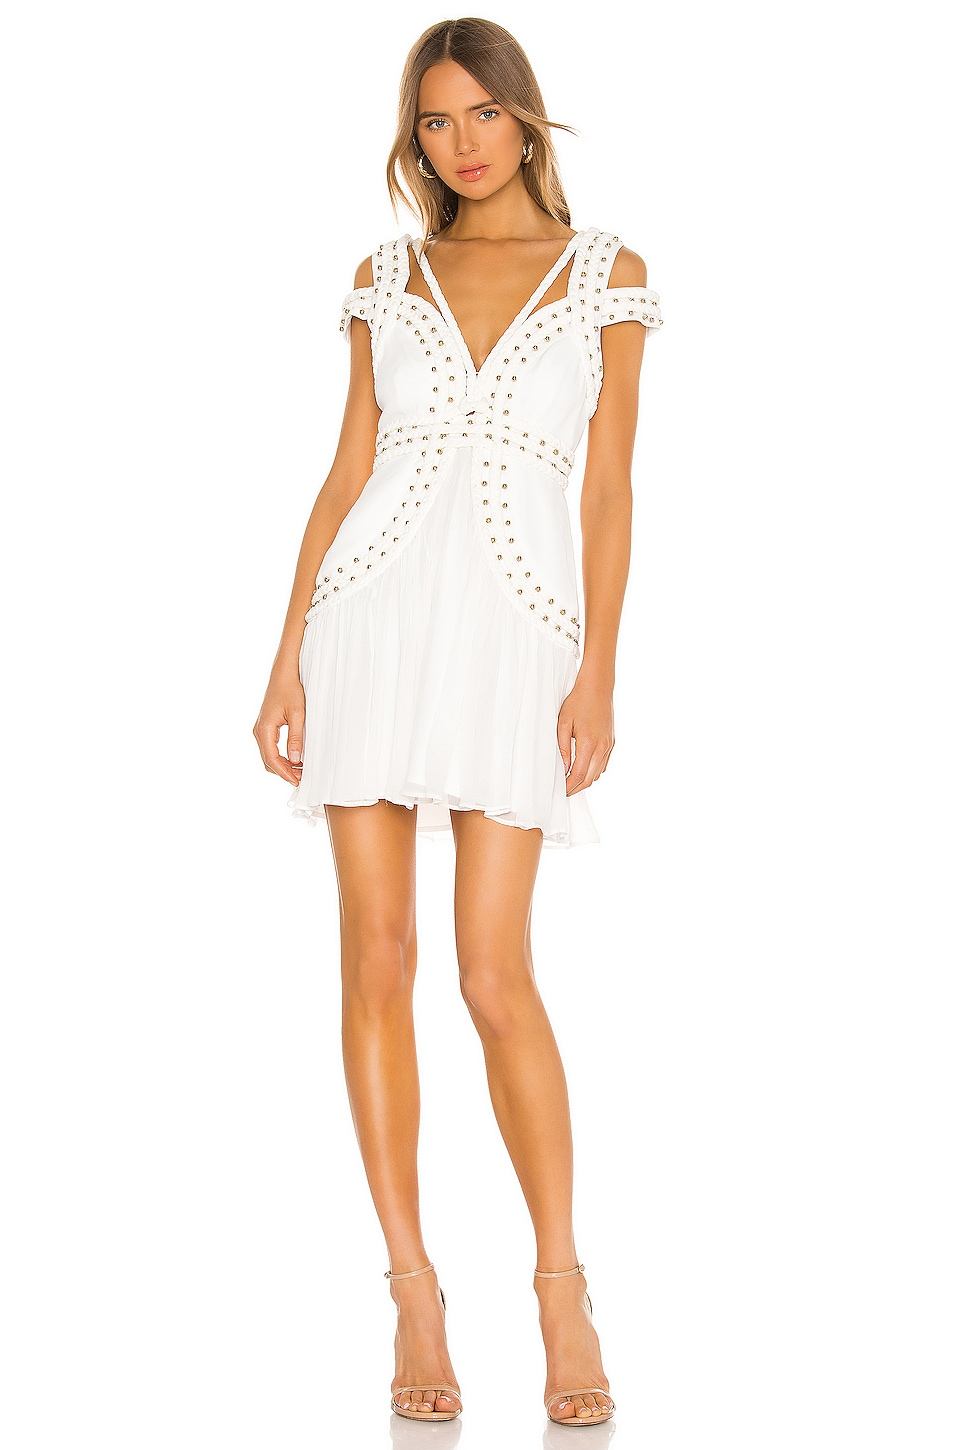 THURLEY X REVOLVE Mood Crest Mini Dress in Ivory